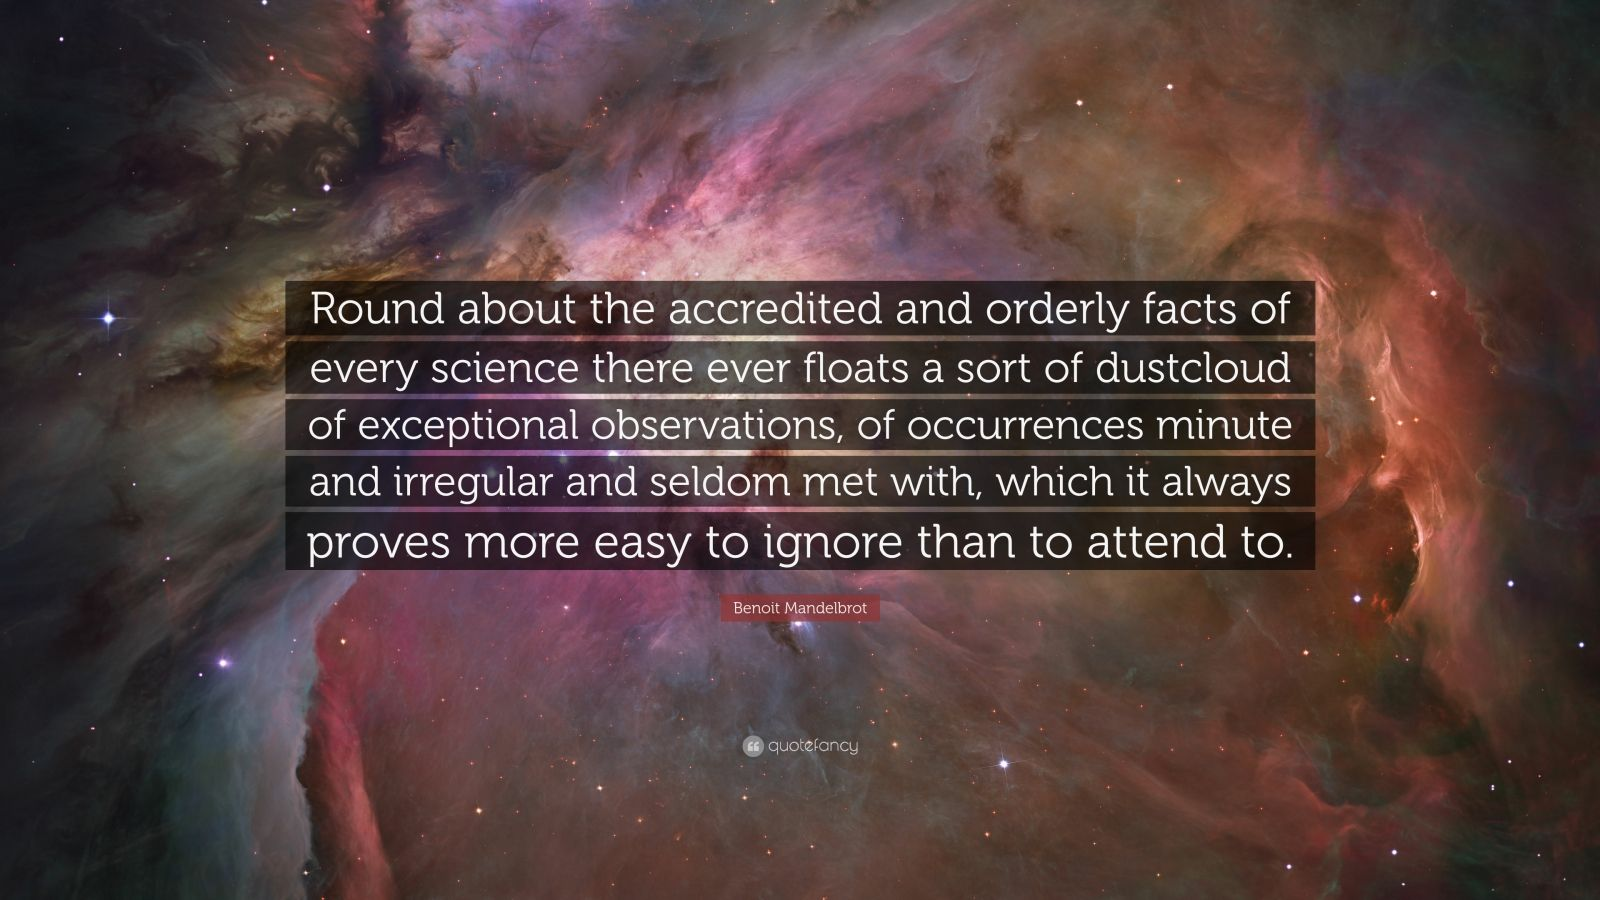 """Benoit Mandelbrot Quote: """"Round about the accredited and orderly facts of every science there ever floats a sort of dustcloud of exceptional observations, of occurrences minute and irregular and seldom met with, which it always proves more easy to ignore than to attend to."""""""